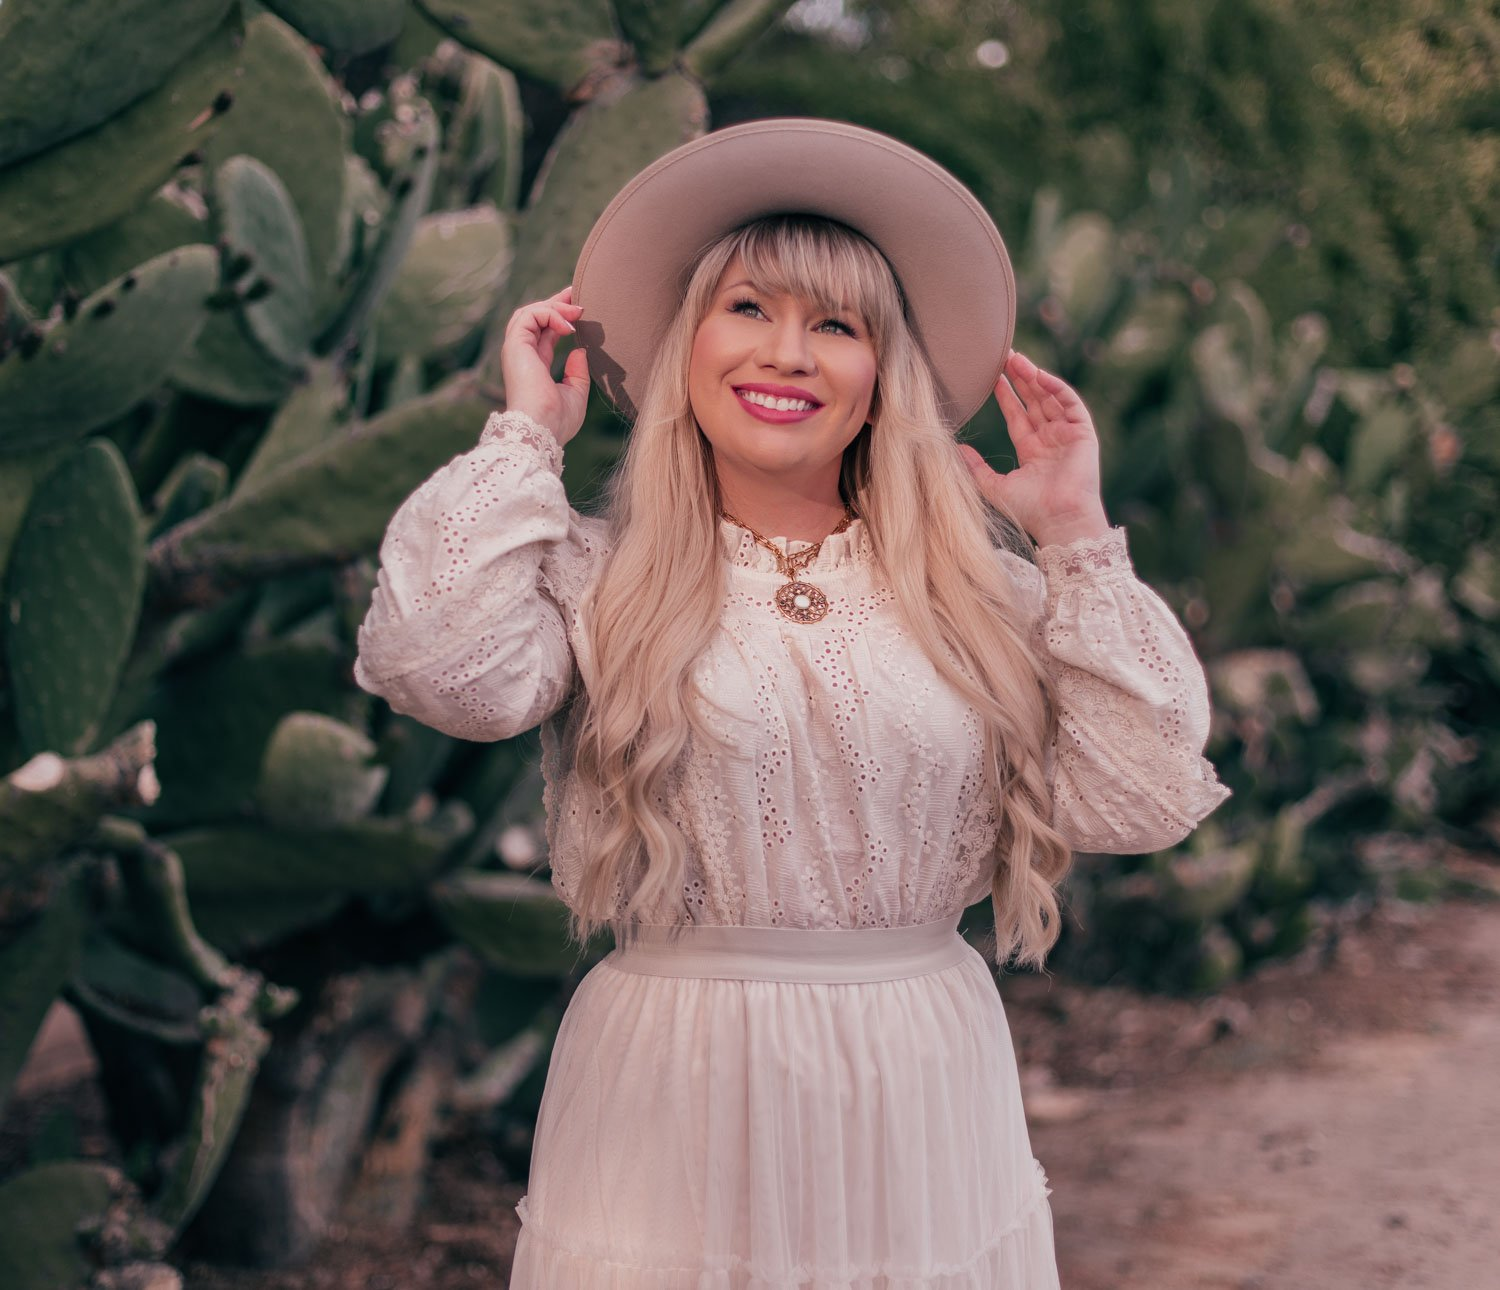 Fashion Blogger Elizabeth Hugen shares tips on How to Style a Rancher Hat in a Feminine Way and wears a Gigi Pip Monroe hat and a Sequin jewelry talisman necklace